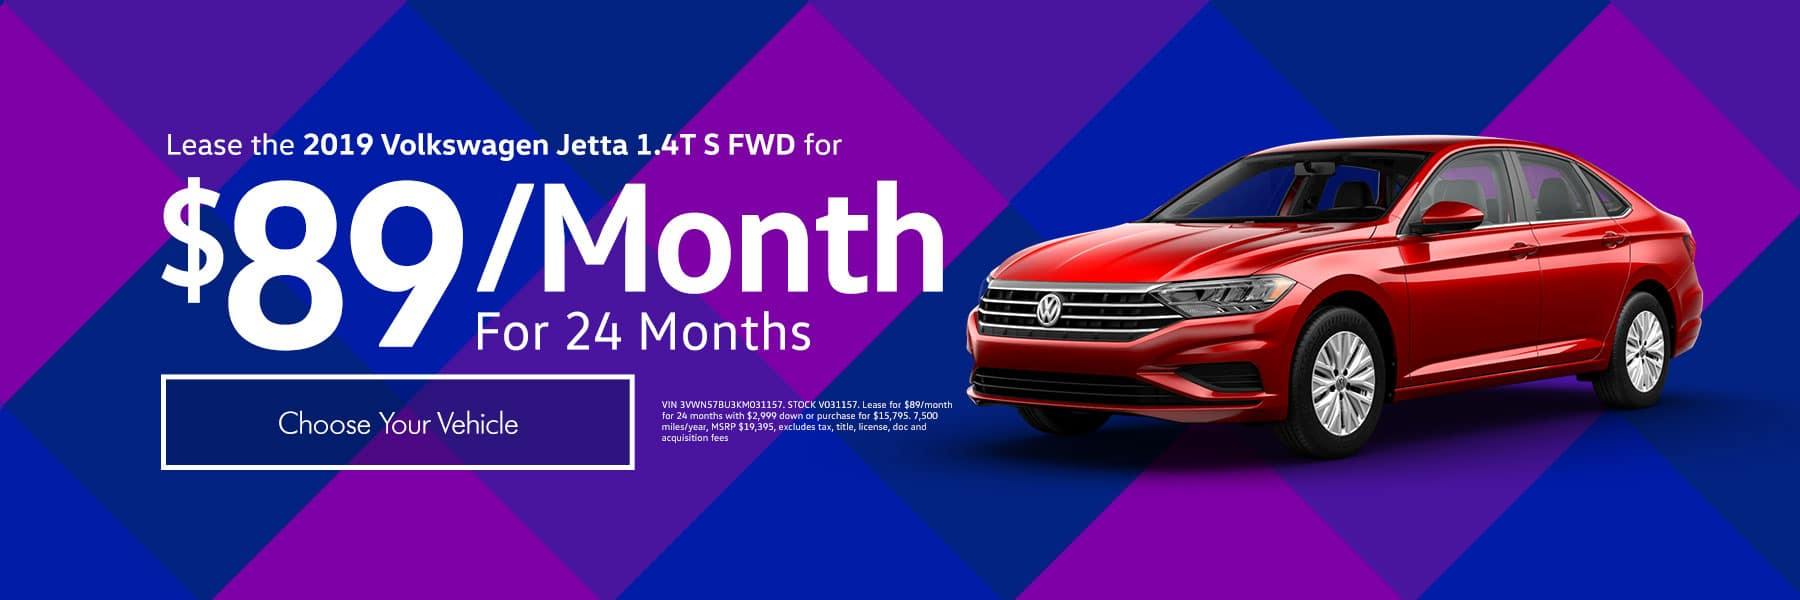 Lease the 2019 Volkswagen Jetta 1.4T S FWD for $89/month for 24 months - Choose your vehicle